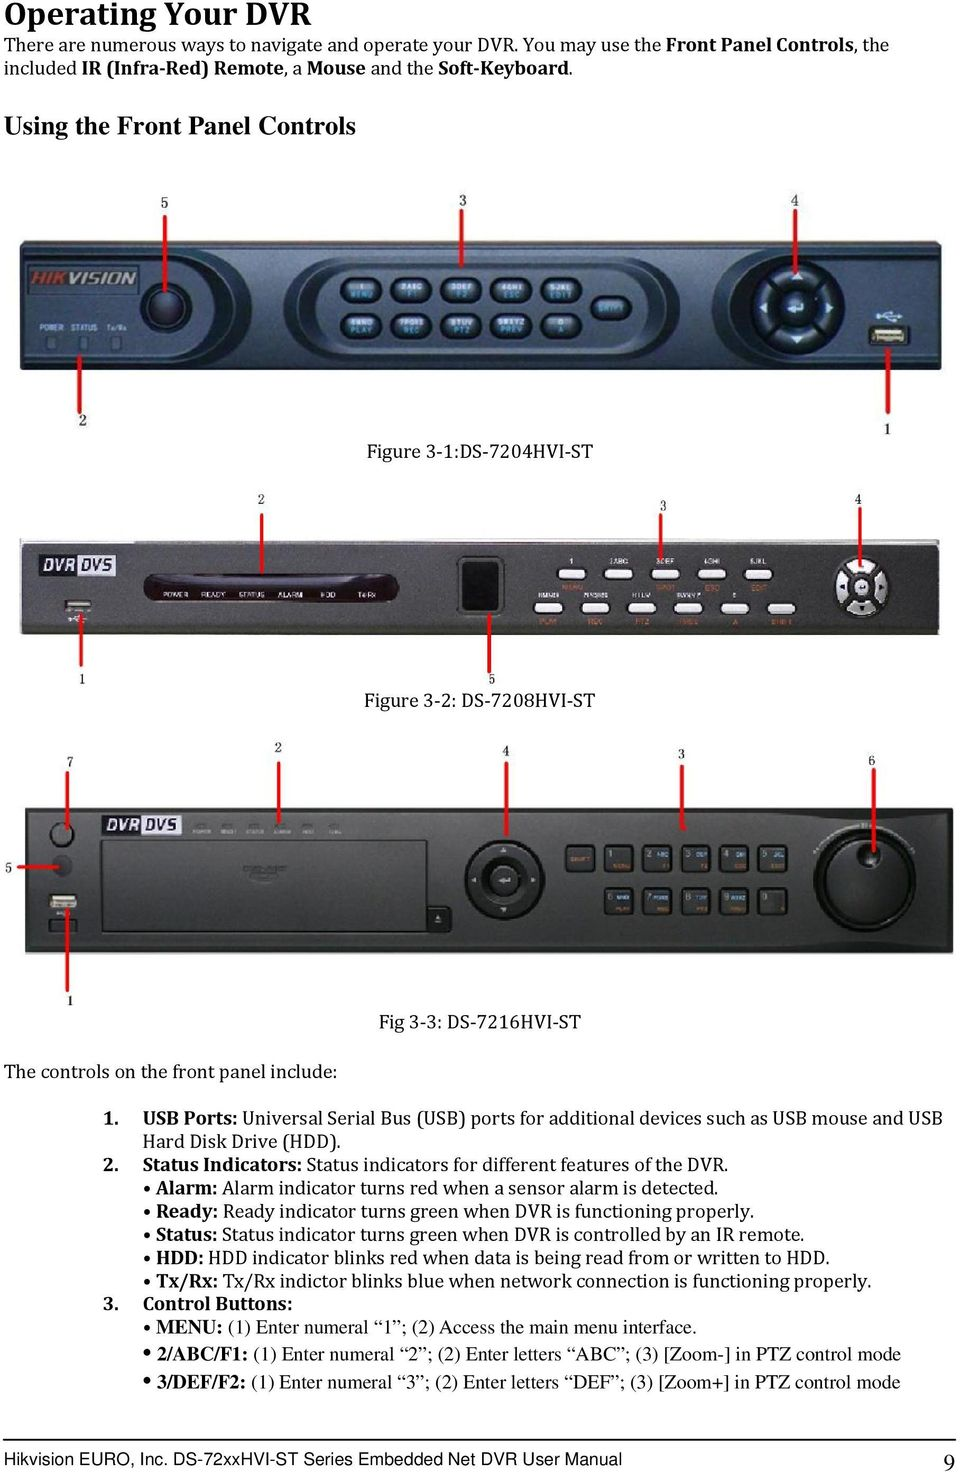 USB Ports: Universal Serial Bus (USB) ports for additional devices such as USB mouse and USB Hard Disk Drive (HDD). 2. Status Indicators: Status indicators for different features of the DVR.